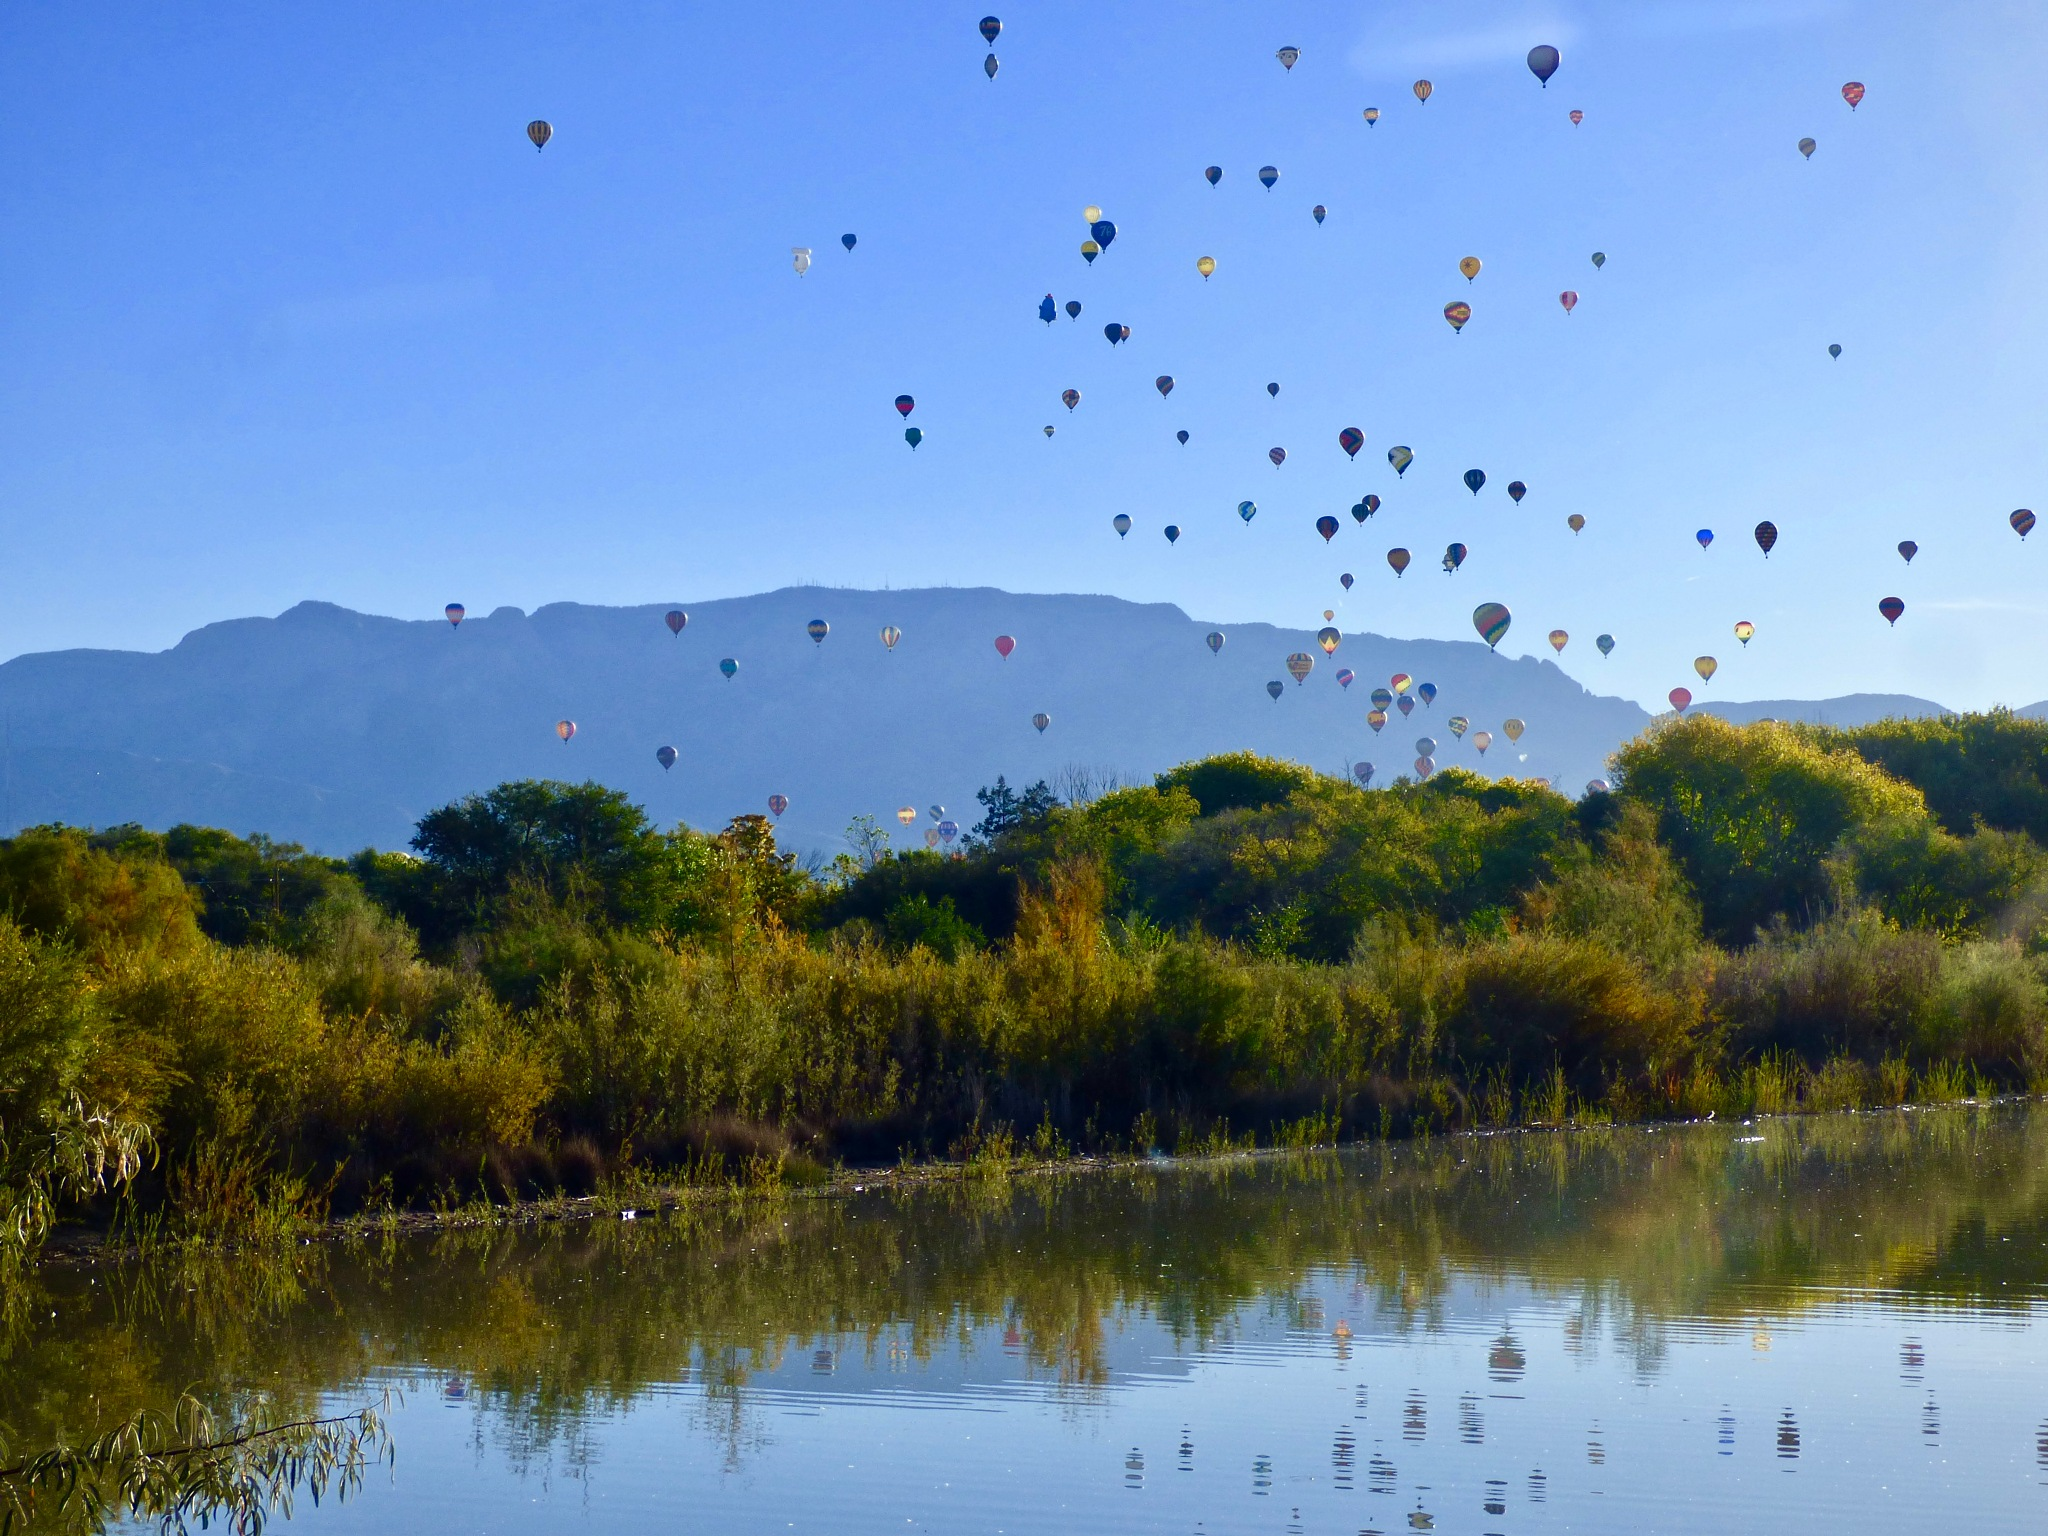 Reflections of Balloons by Hunter Ten Broeck